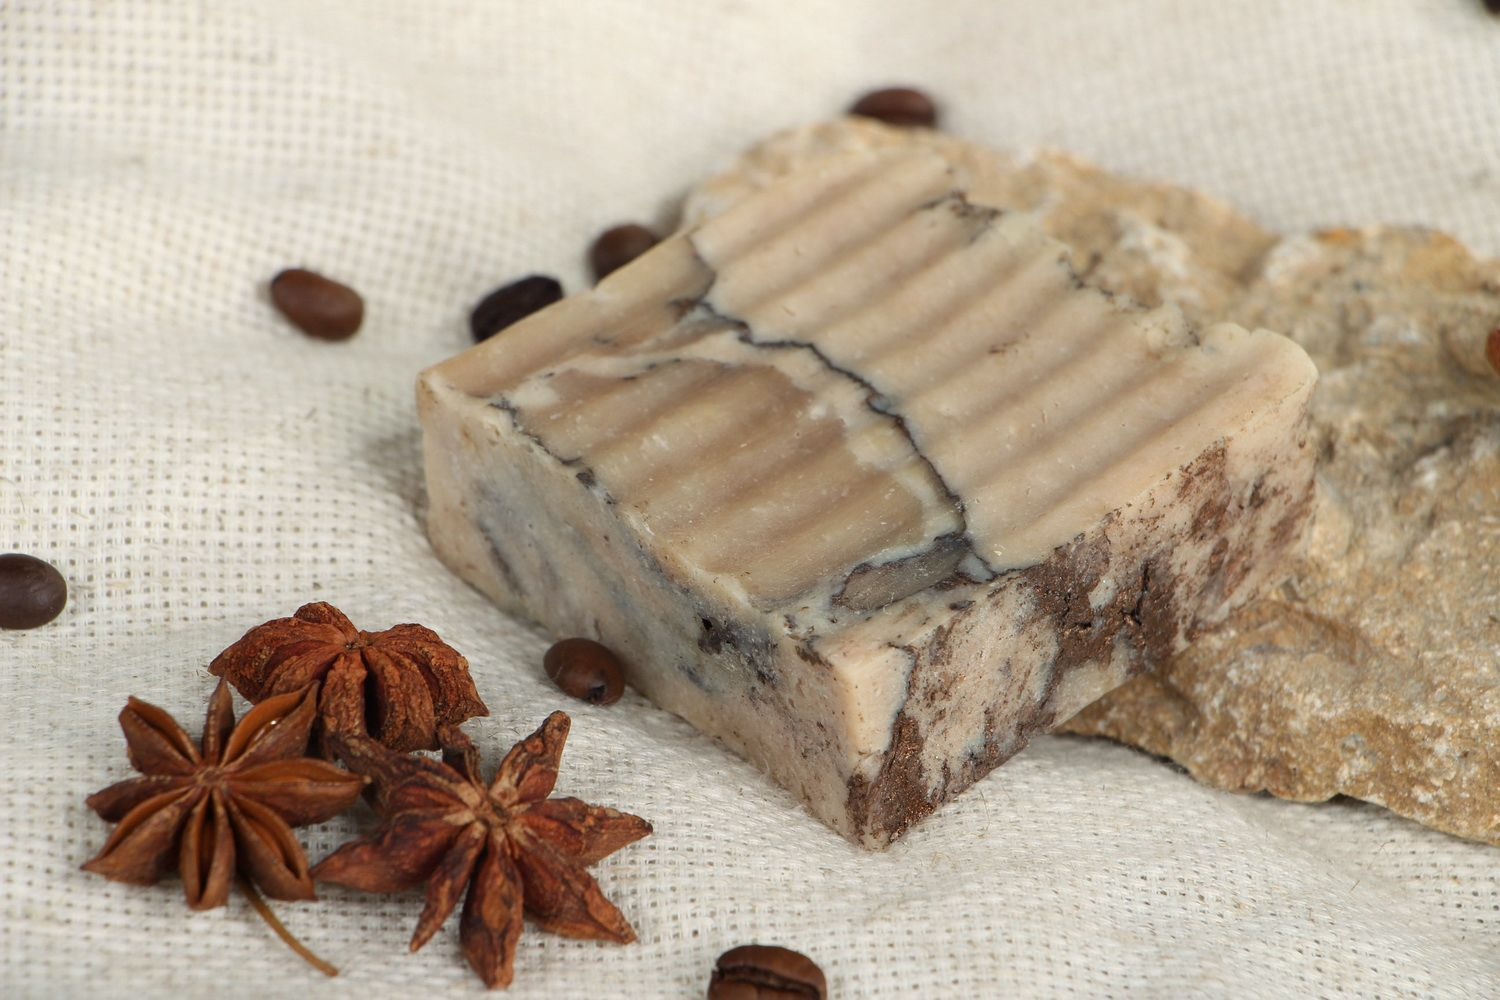 Handmade soap with almond oil photo 5